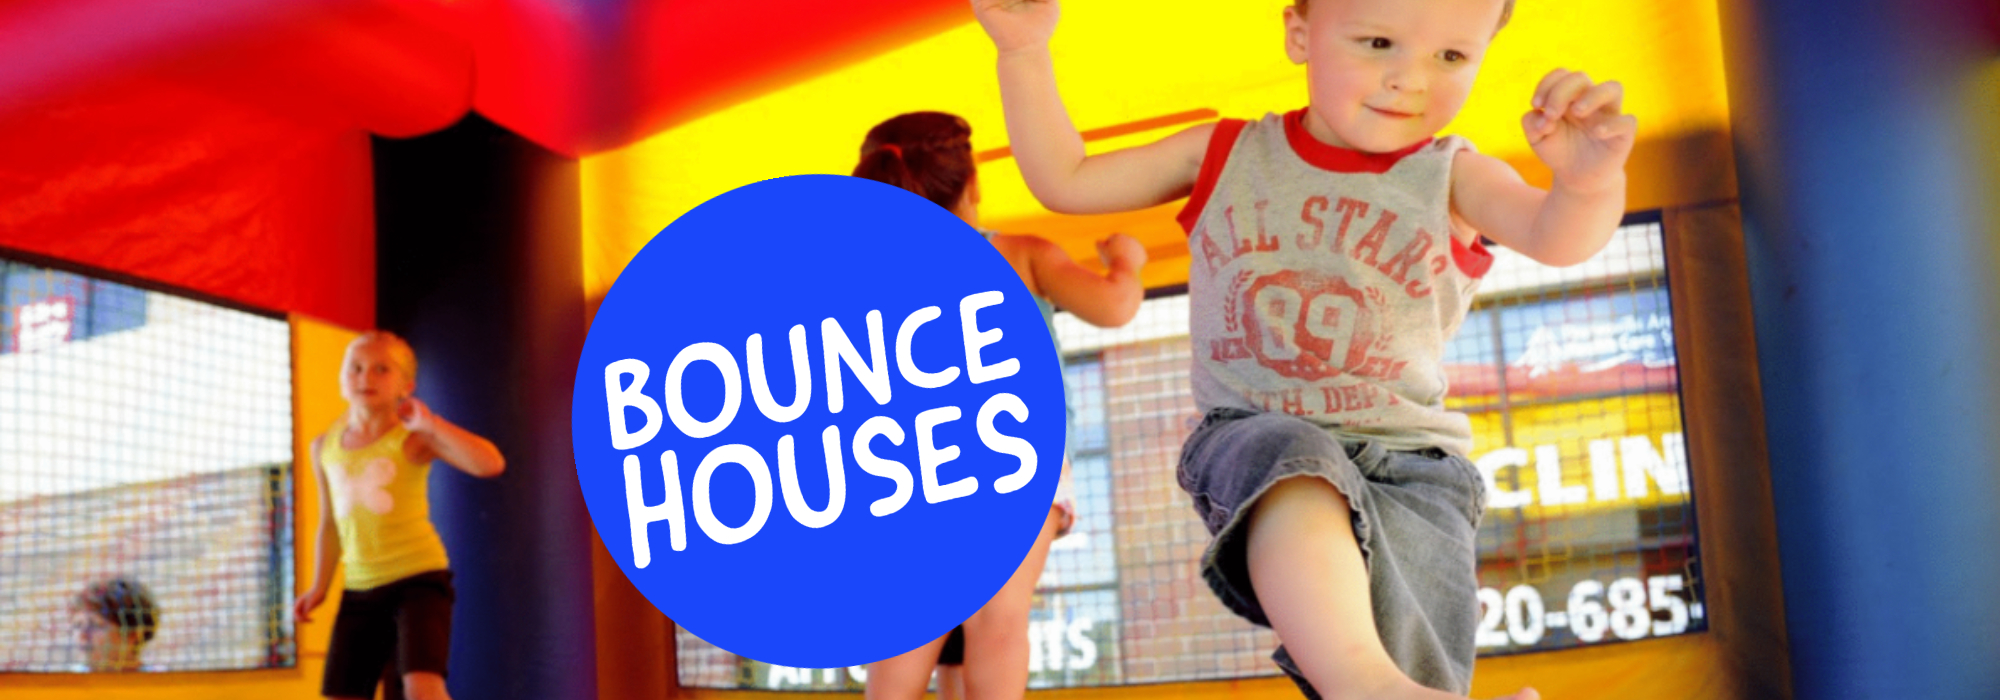 bounce house rentals in Flowery Branch